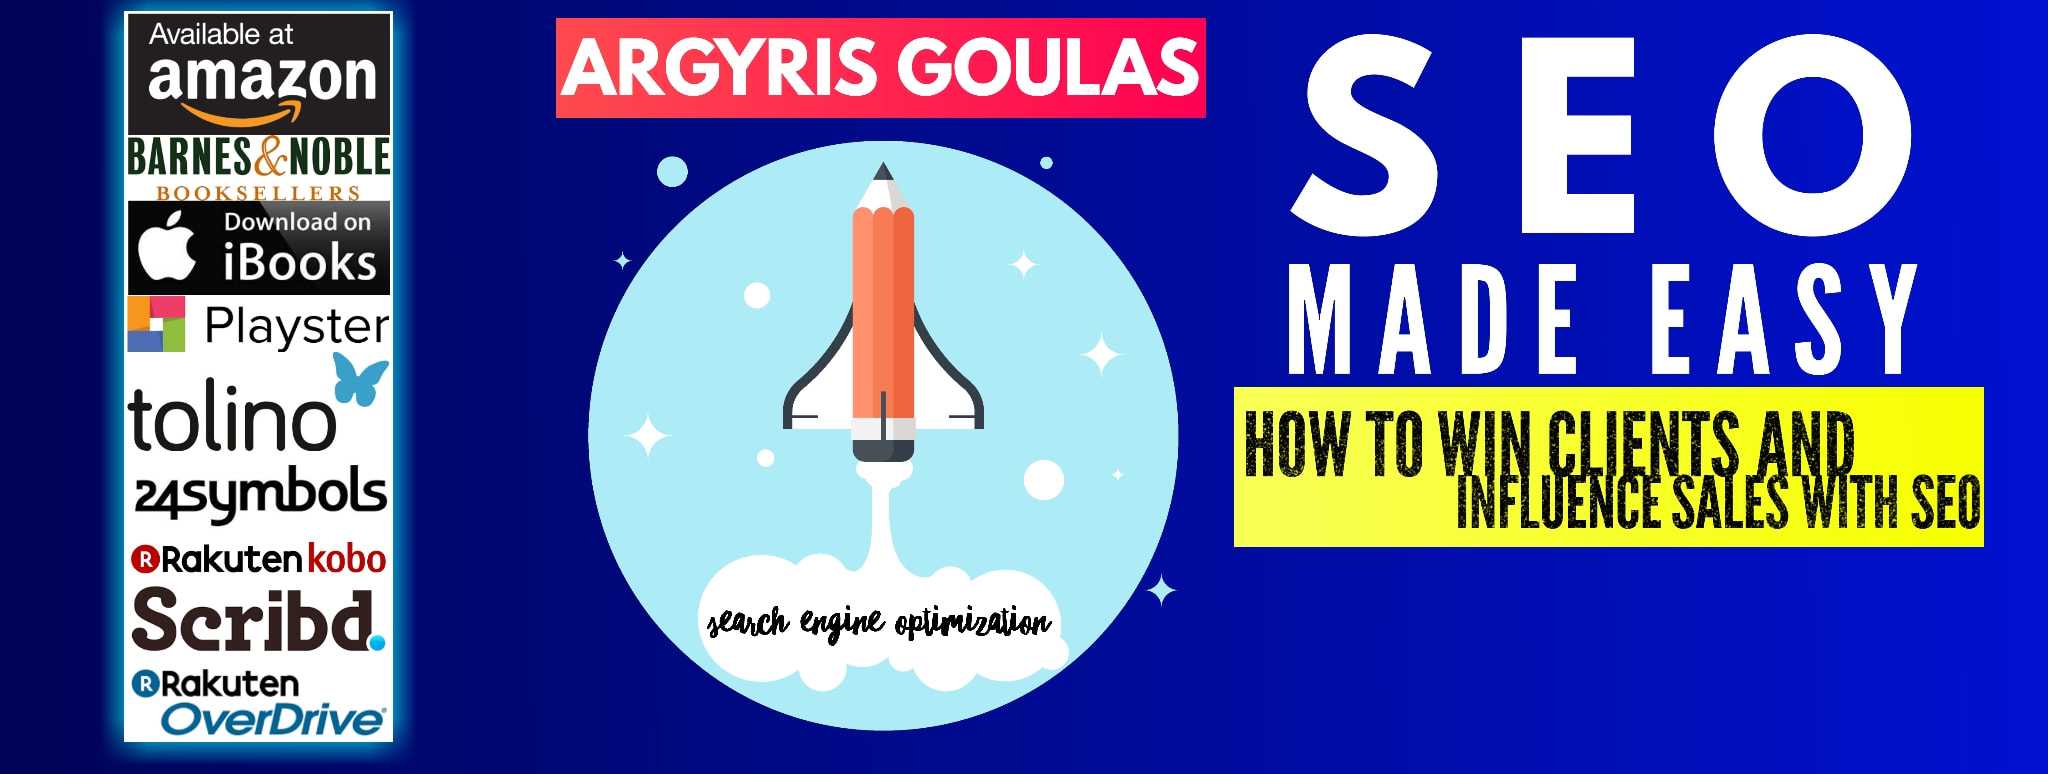 SEO Made Easy: How to Win Clients and Influence Sales with SEO by Argyris GoulasPicture